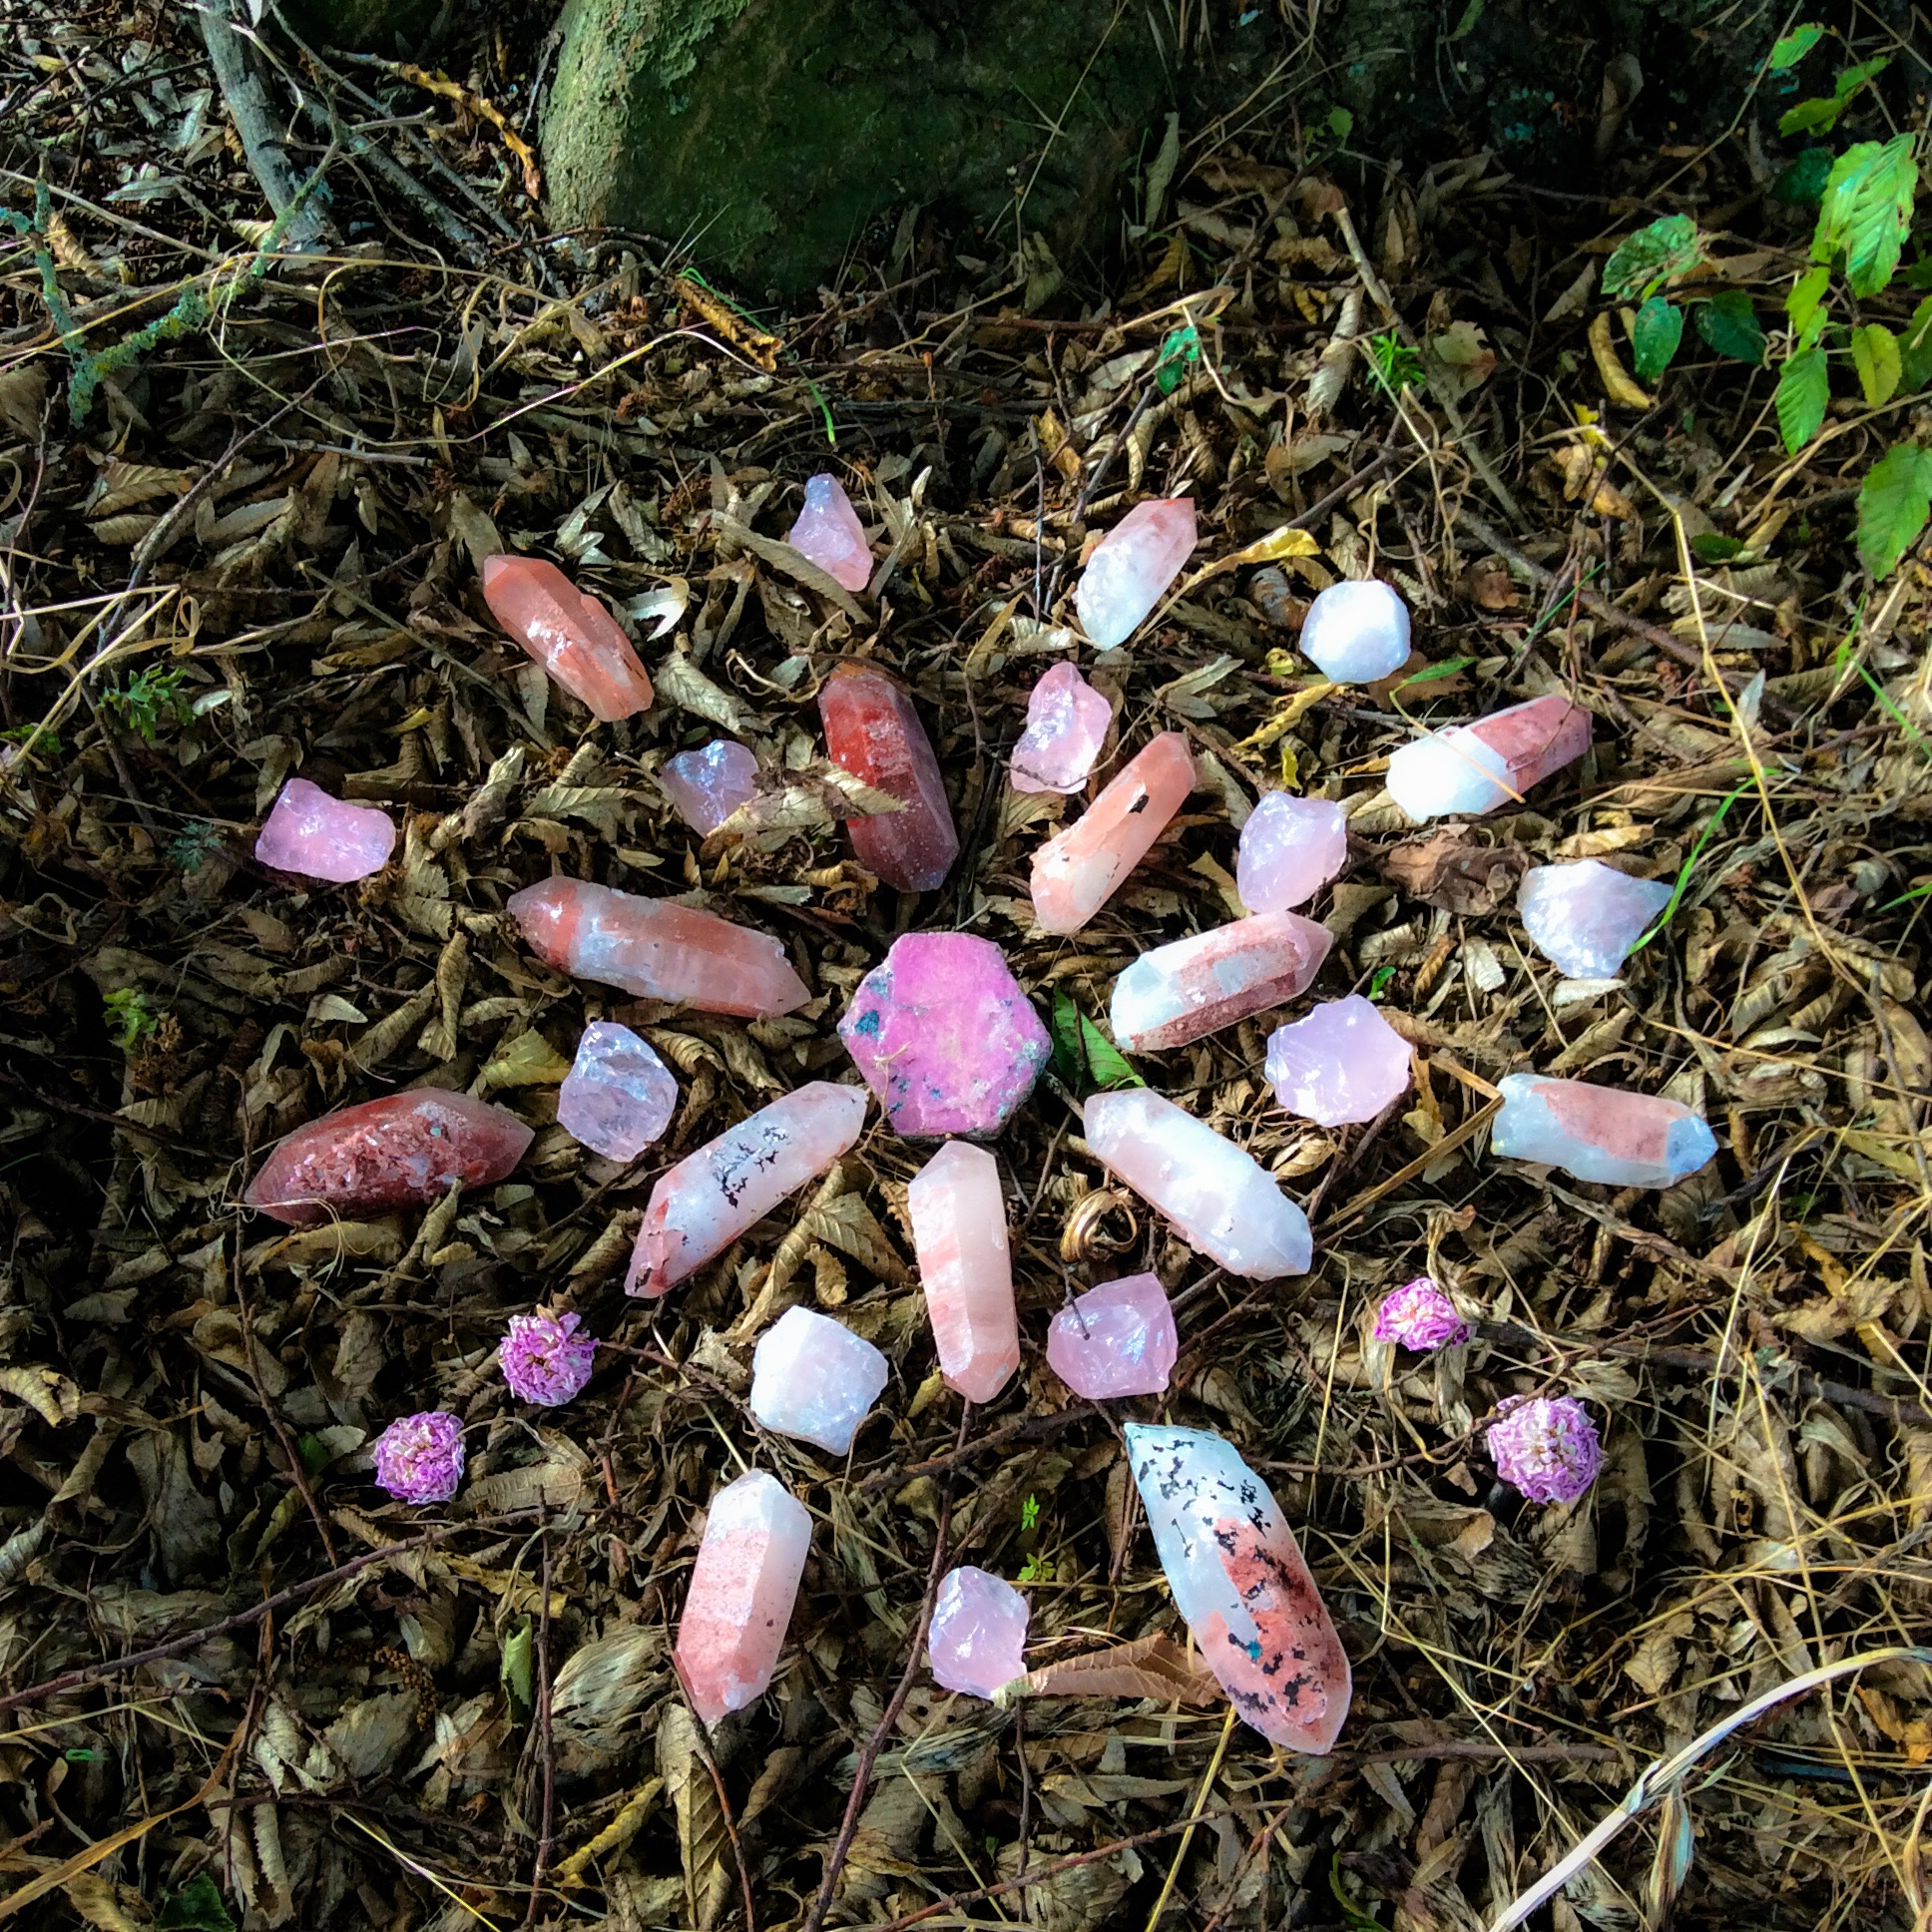 Ruby, Hematoid Quartz, Rose Quartz and Roses at the feet of the Fagus Sylvaticus in our garden